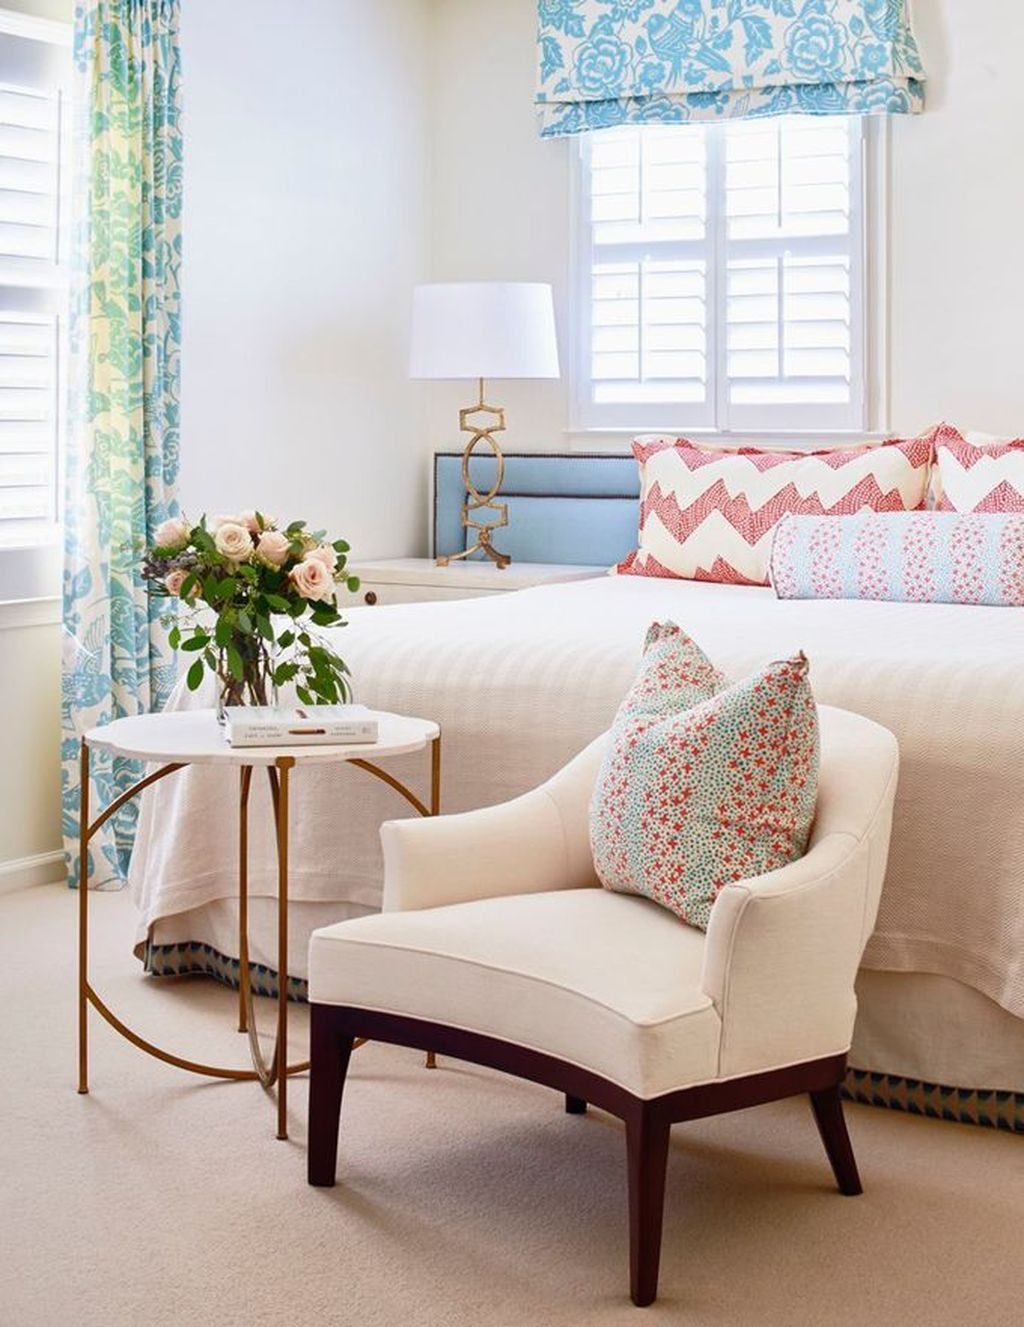 Fascinating Summer Bedroom Decor Ideas 11